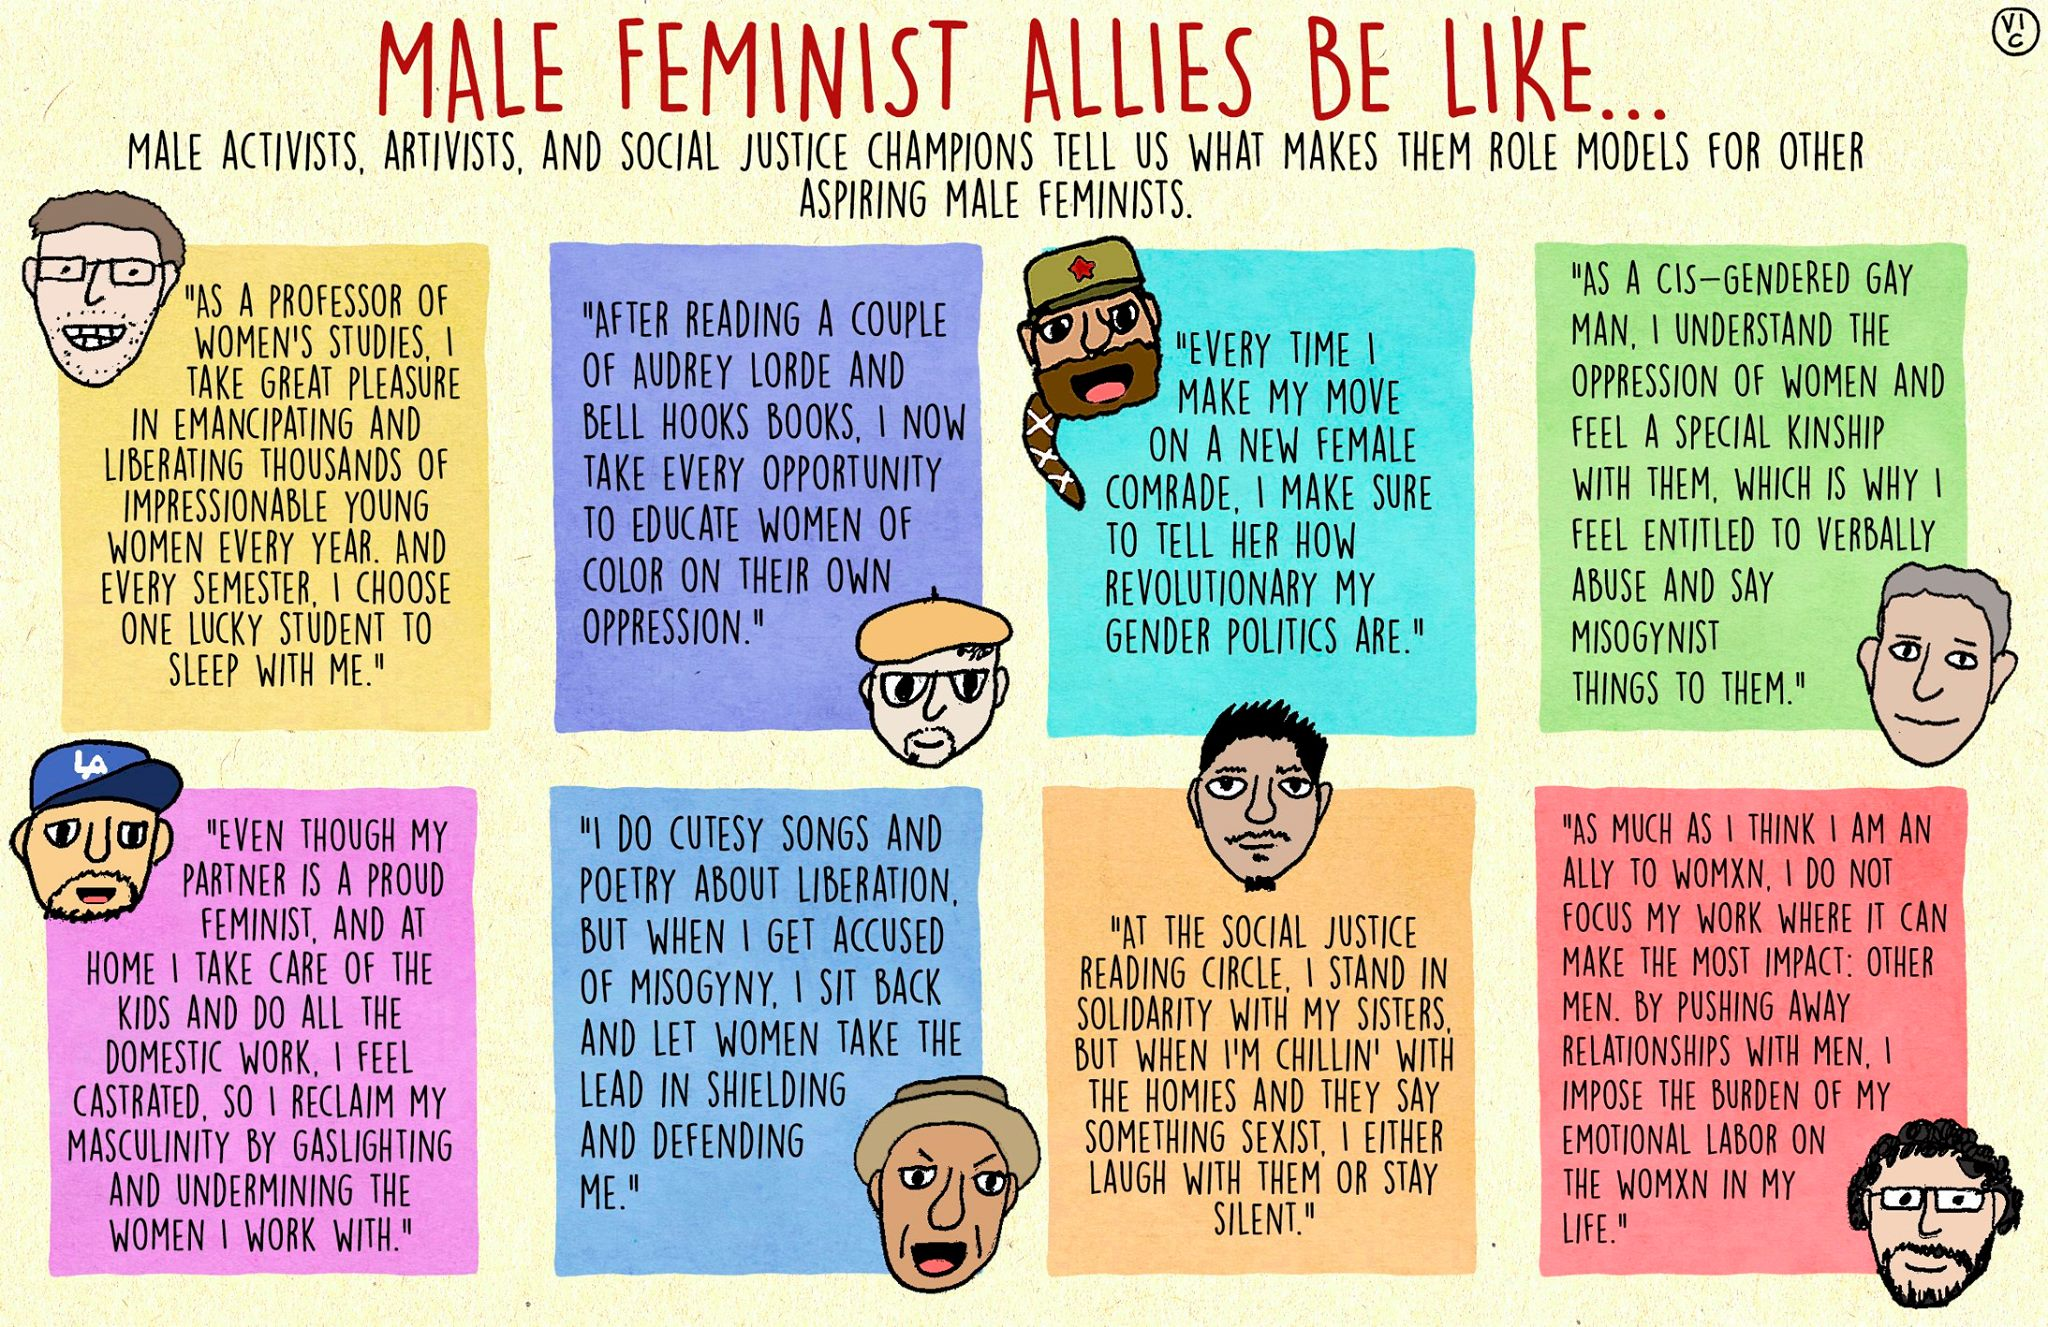 Why I'm a Male Feminist and Not a Men's Rights Activist